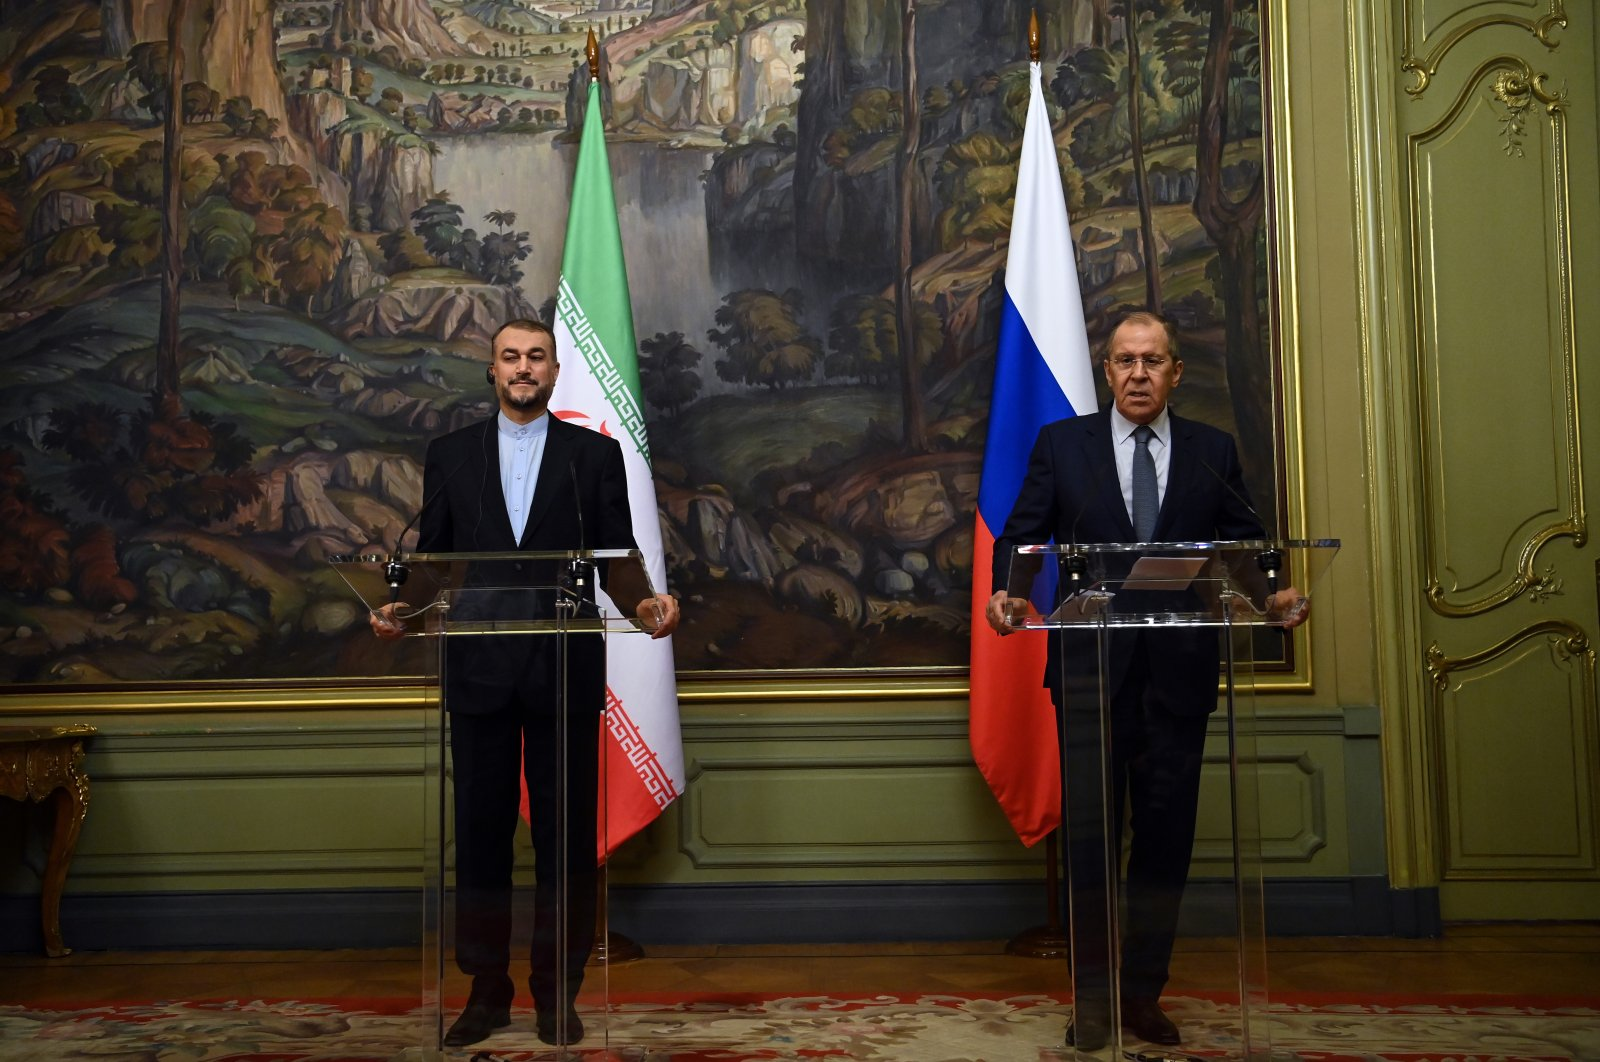 Russian Foreign Minister Sergei Lavrov (R) and Iranian Foreign Minister Hossein Amir-Abdollahian (L) attend a joint news conference following their talks in Moscow, Russia, Oct. 6, 2021. (EPA Photo)